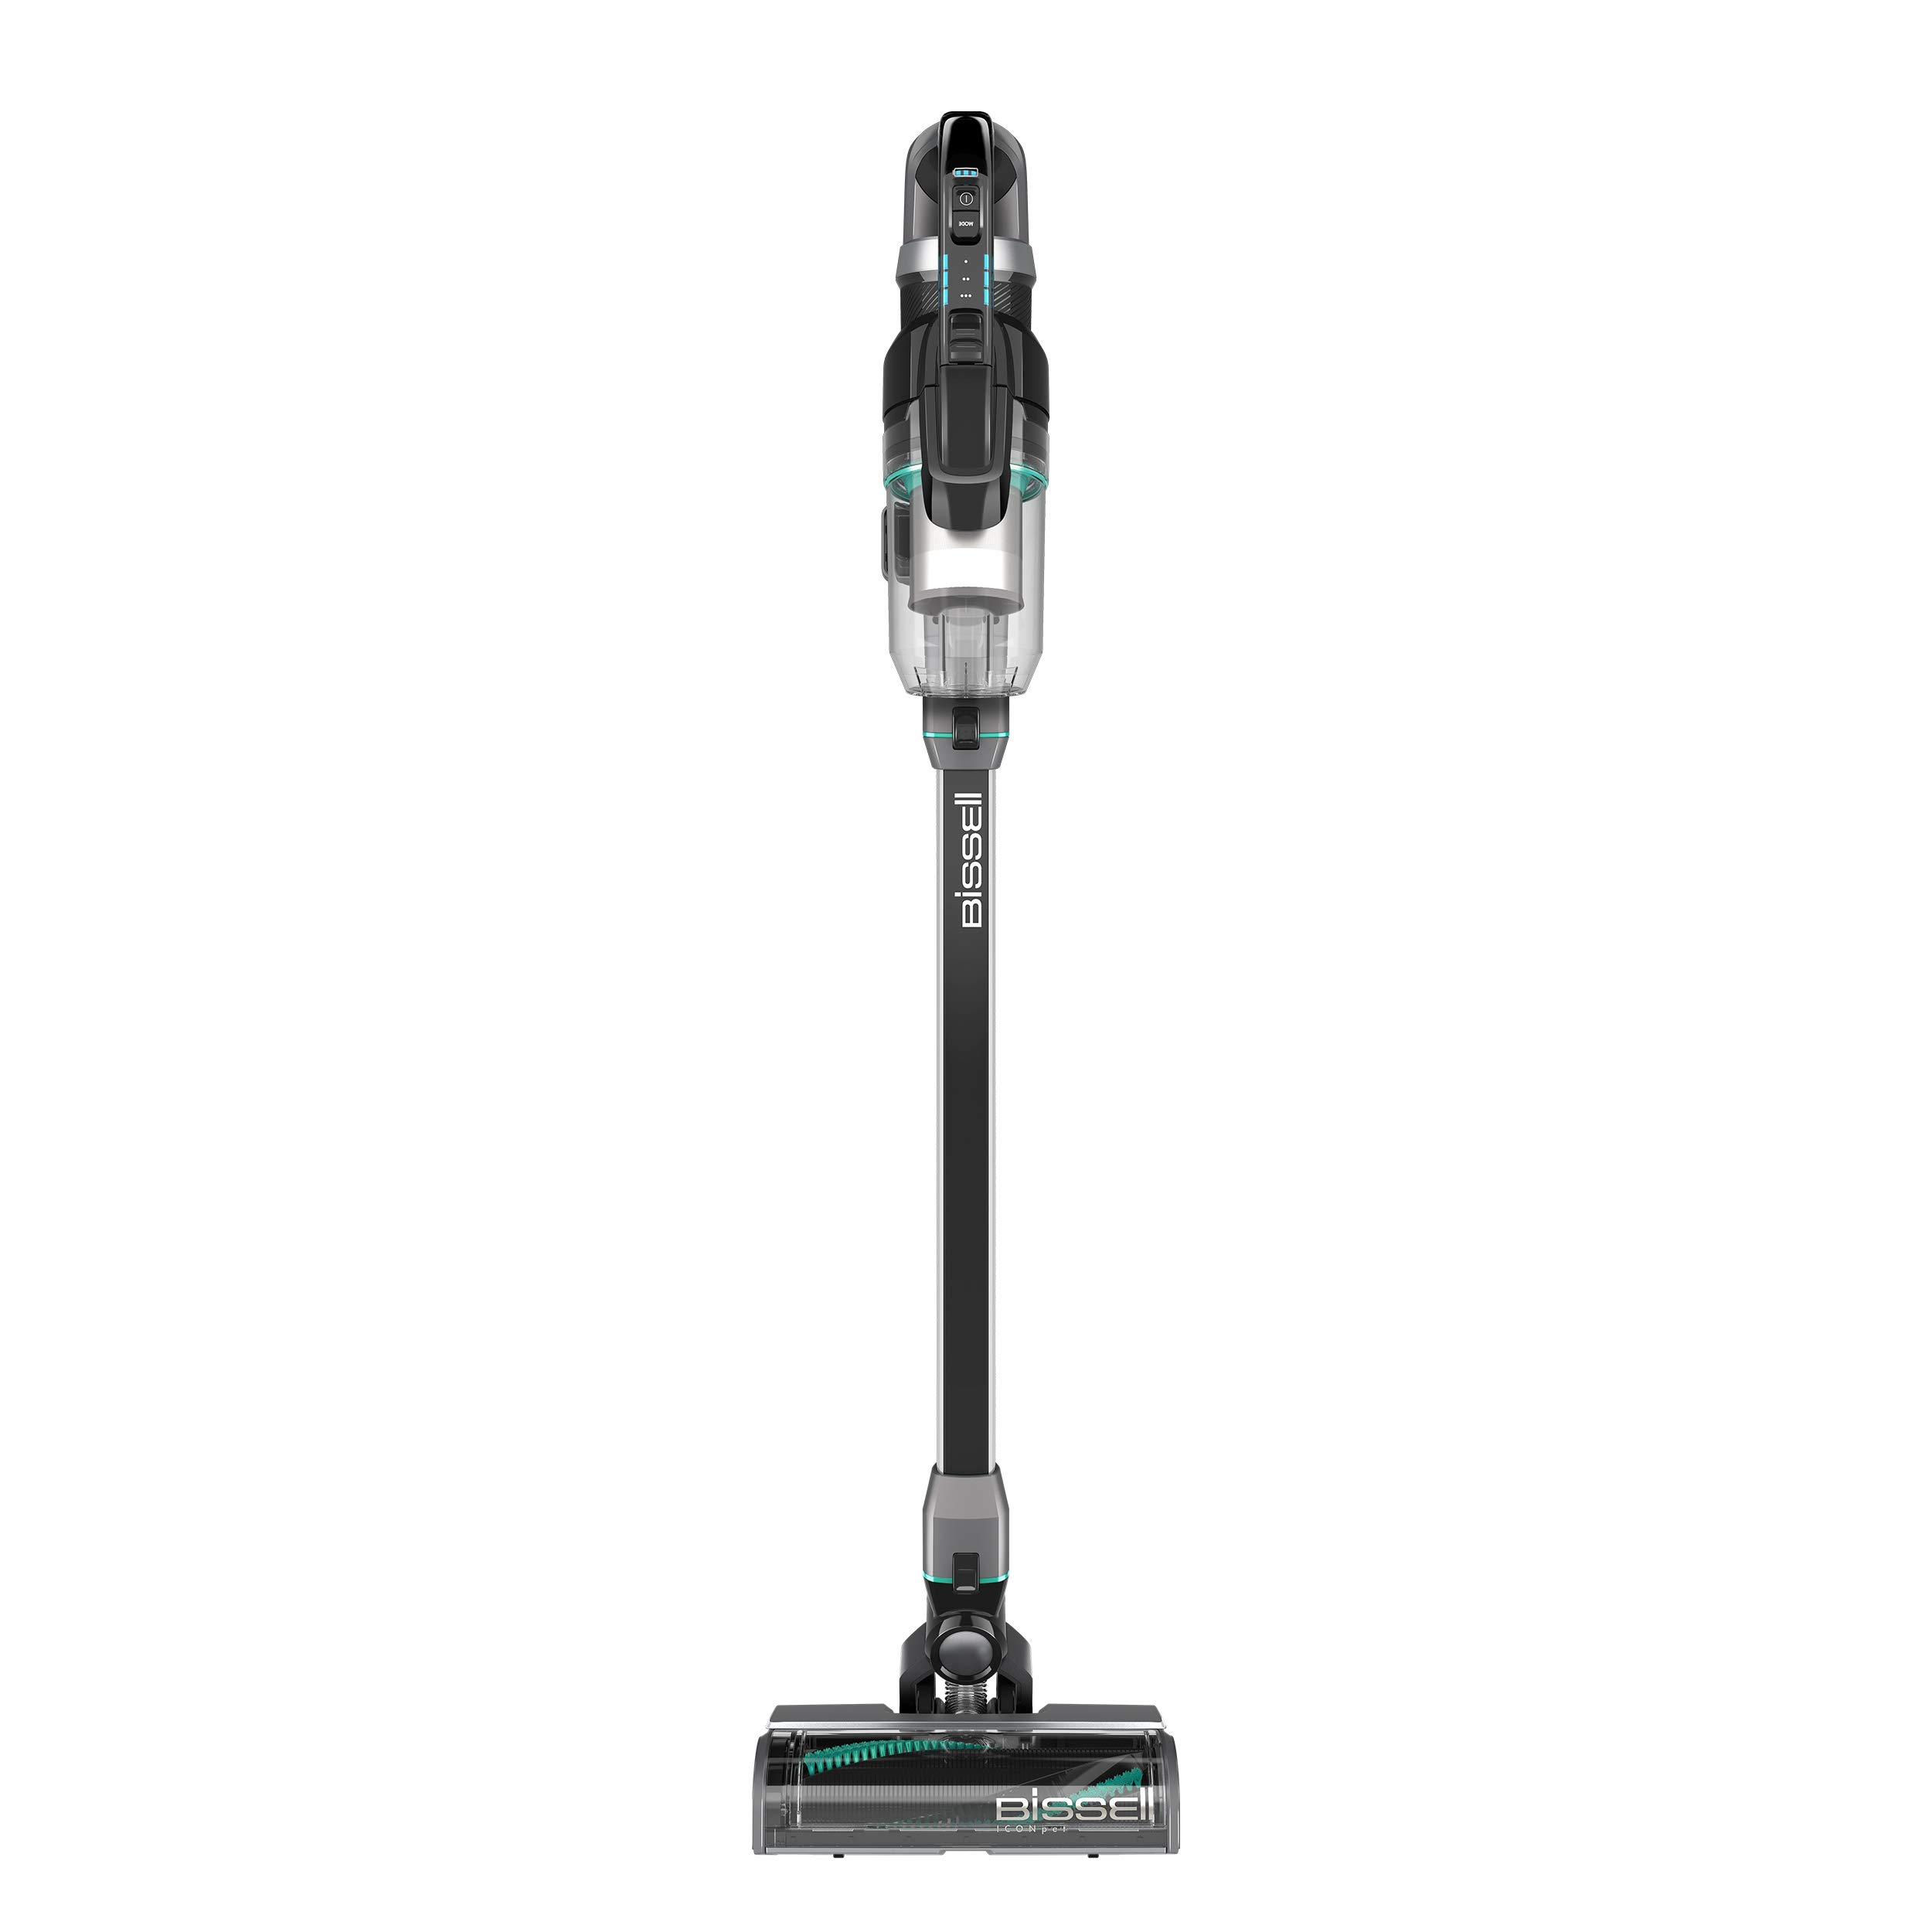 Bissell ICONpet Cordless Stick Vacuum Cleaner, 22889 by Bissell